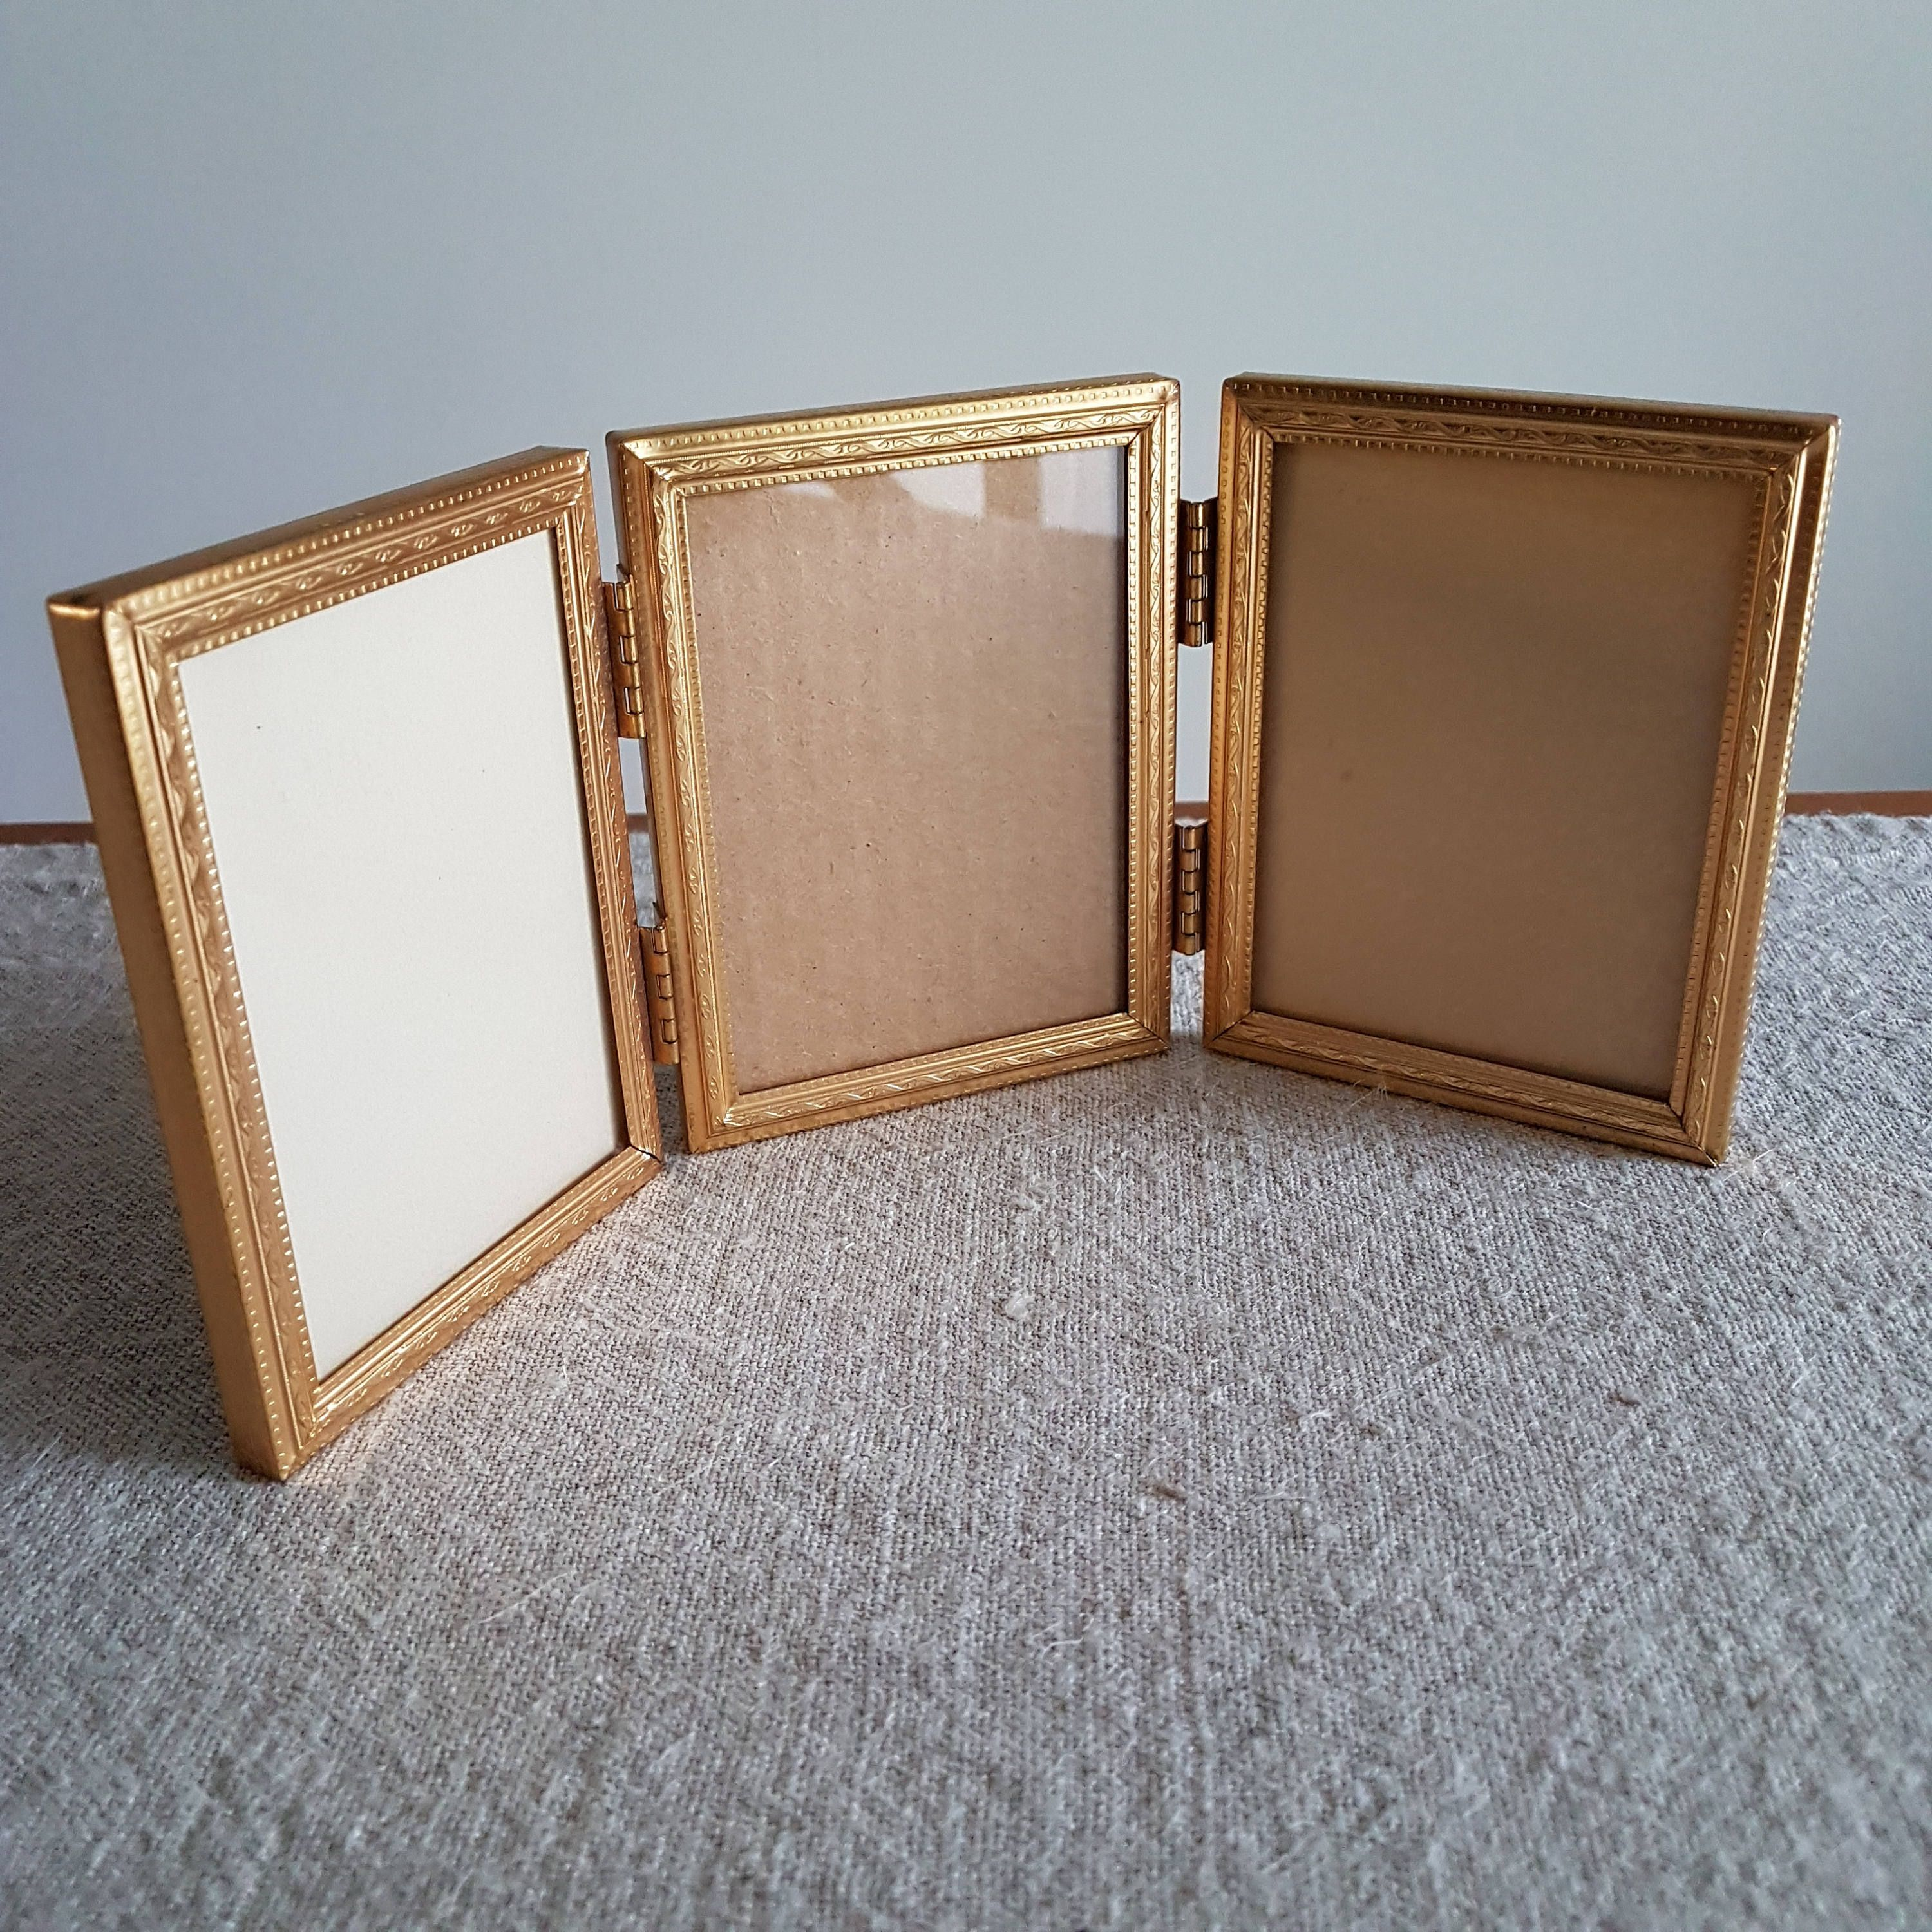 3 14 x 4 14 folding brass gold tone metal hinged picture x folding brass gold tone metal hinged picture frame trifold three panels triple photo frame mid century wedding signs by bluechickenvintage on etsy jeuxipadfo Images